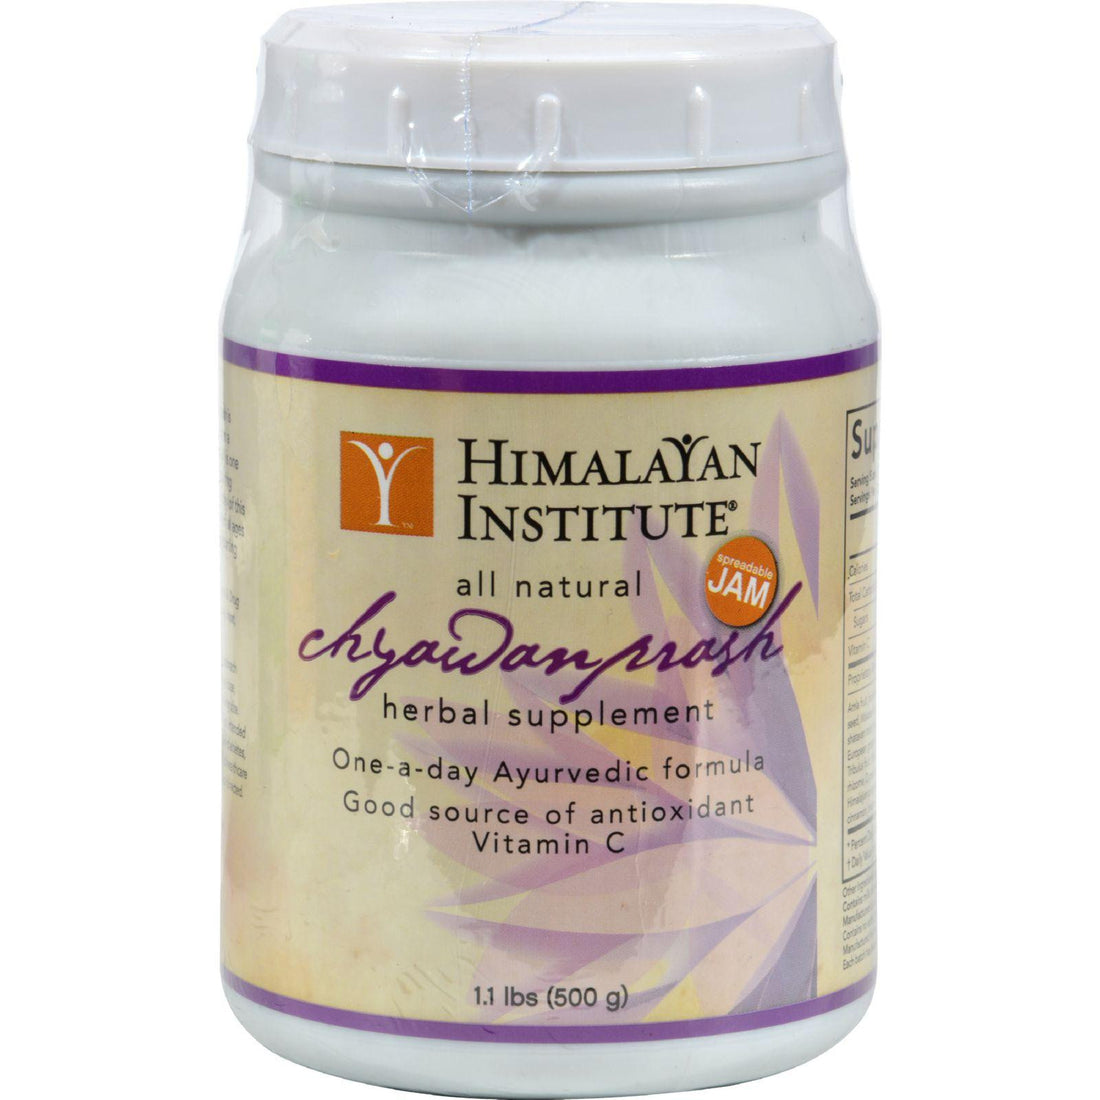 Mother Mantis: Himalayan Institute Chyawanprash Formula - 1 Lb Himalayan Institute Press